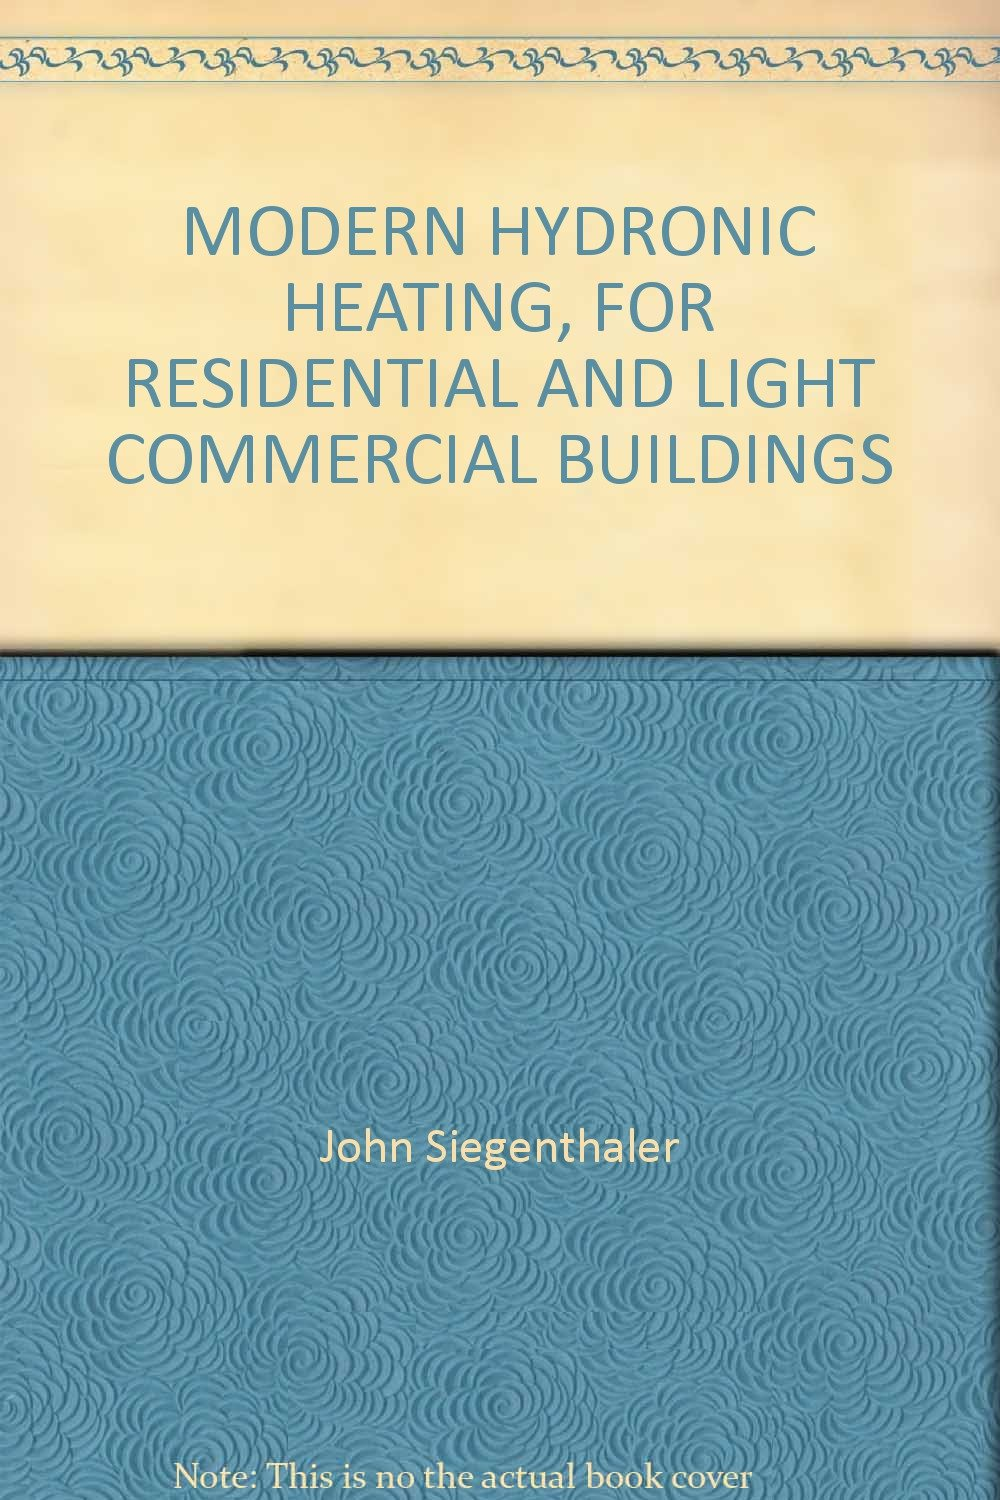 MODERN HYDRONIC HEATING, FOR RESIDENTIAL AND LIGHT COMMERCIAL ...